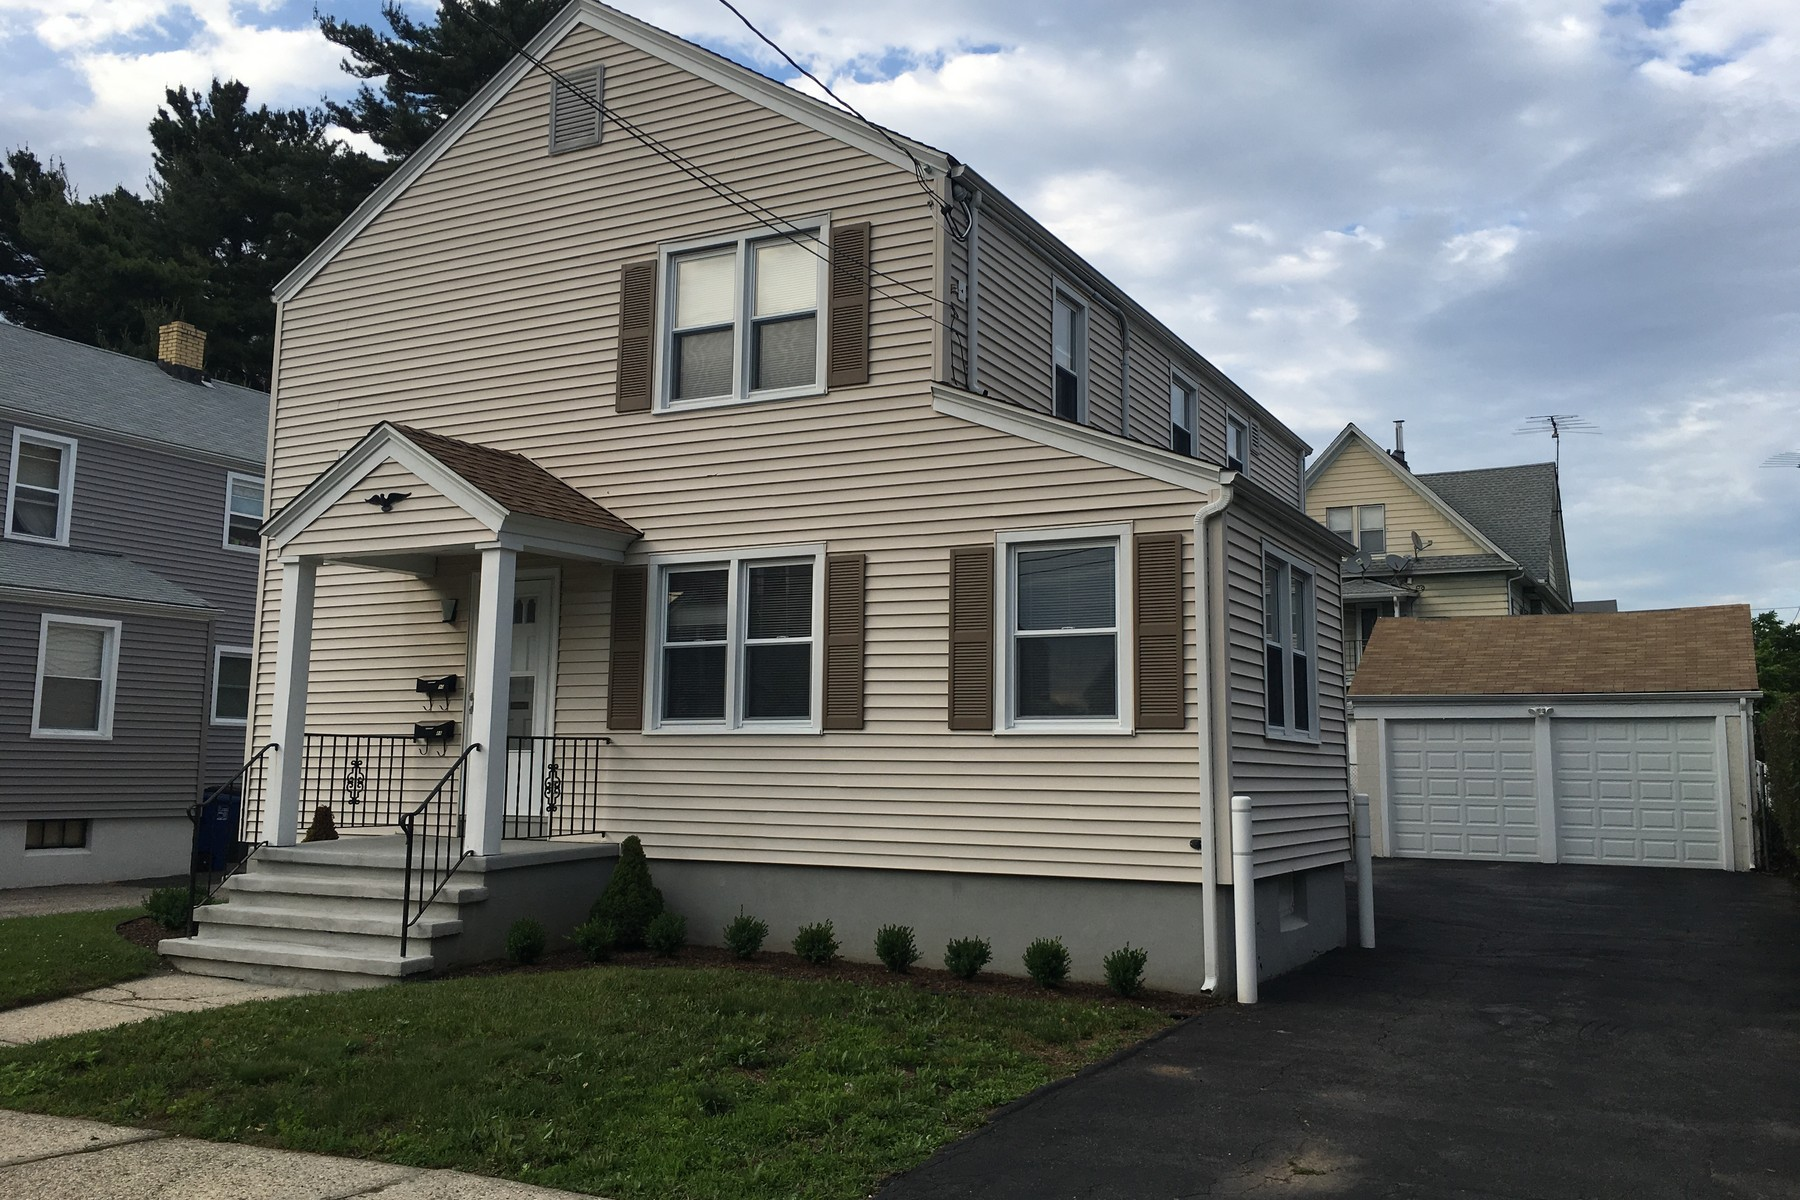 per Vendita alle ore BLACK ROCK TWO FAMILY 88 Princeton Street Bridgeport, Connecticut, 06605 Stati Uniti